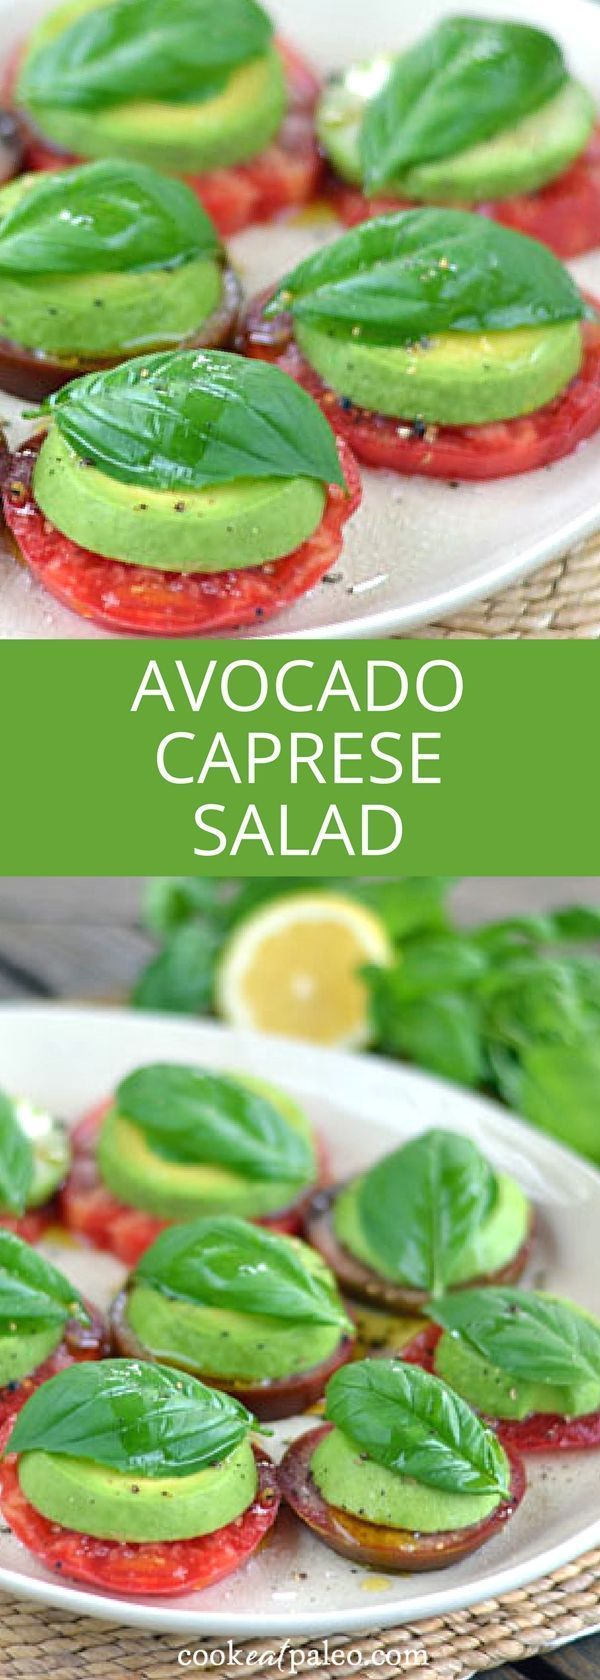 Avocado Caprese salad is a paleo take on a Caprese salad with tomatoes and basil fresh from the garden. Heirloom tomato avocado salad is the perfect appetizer or lunch. {gluten free, dairy free, vegan, paleo} ~ cookeatpaleo.com